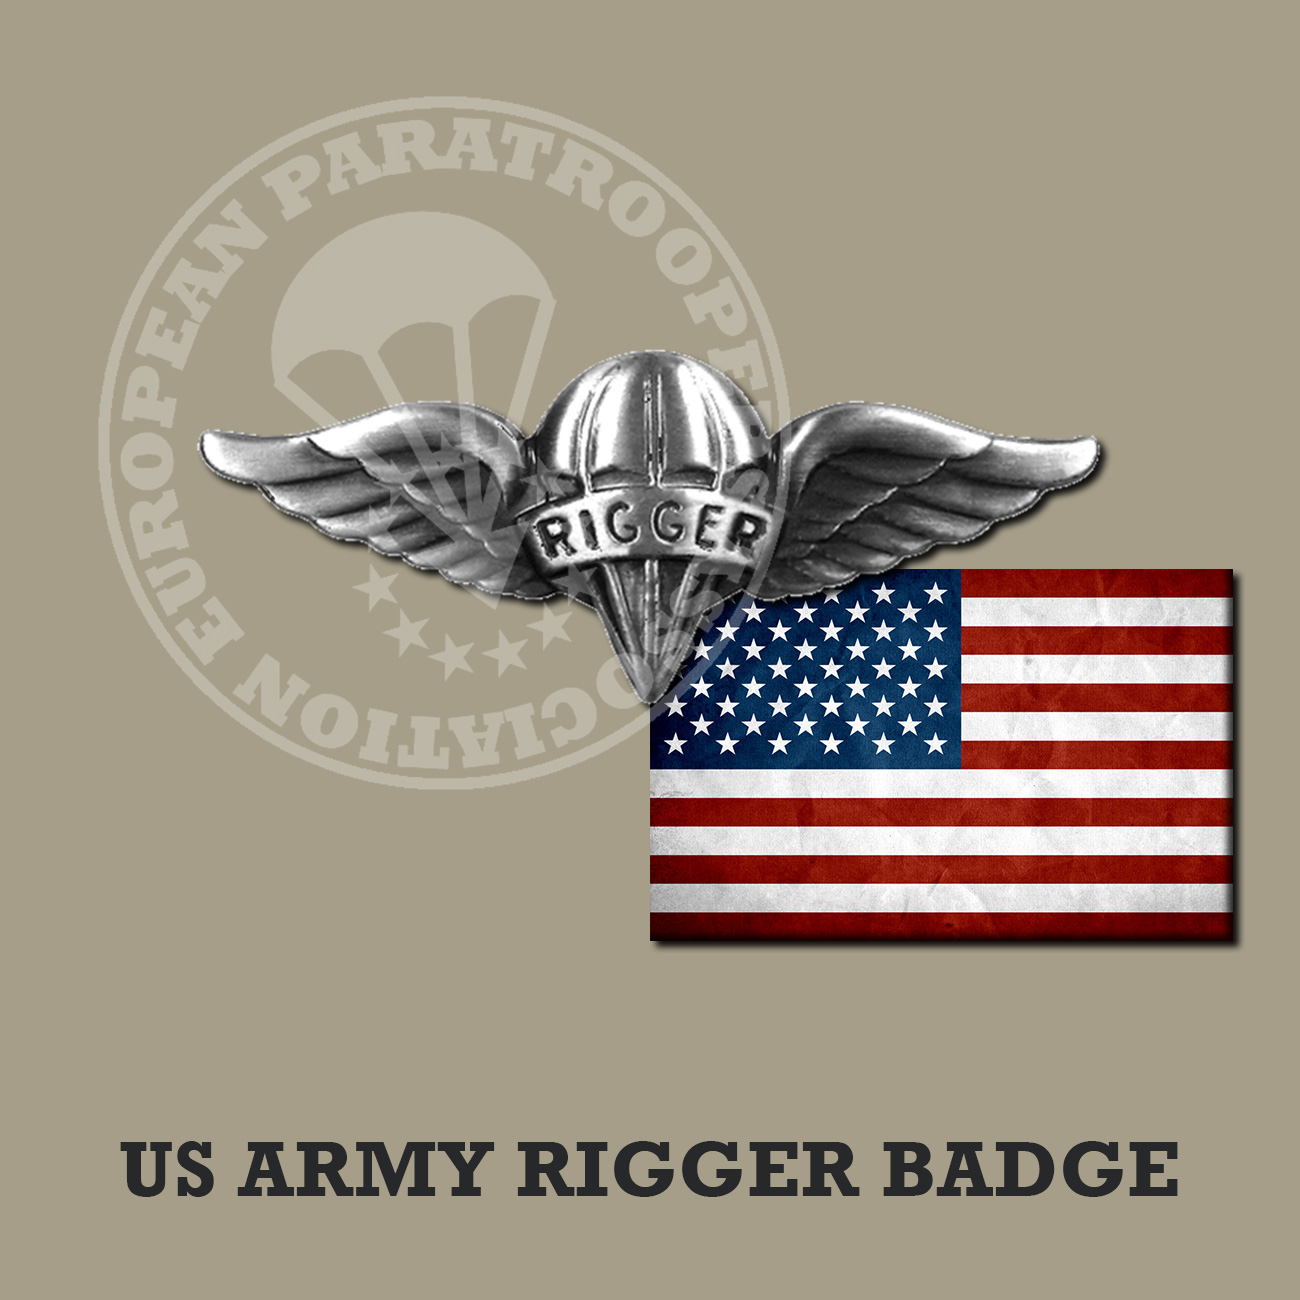 US ARMY RIGGER BADGE